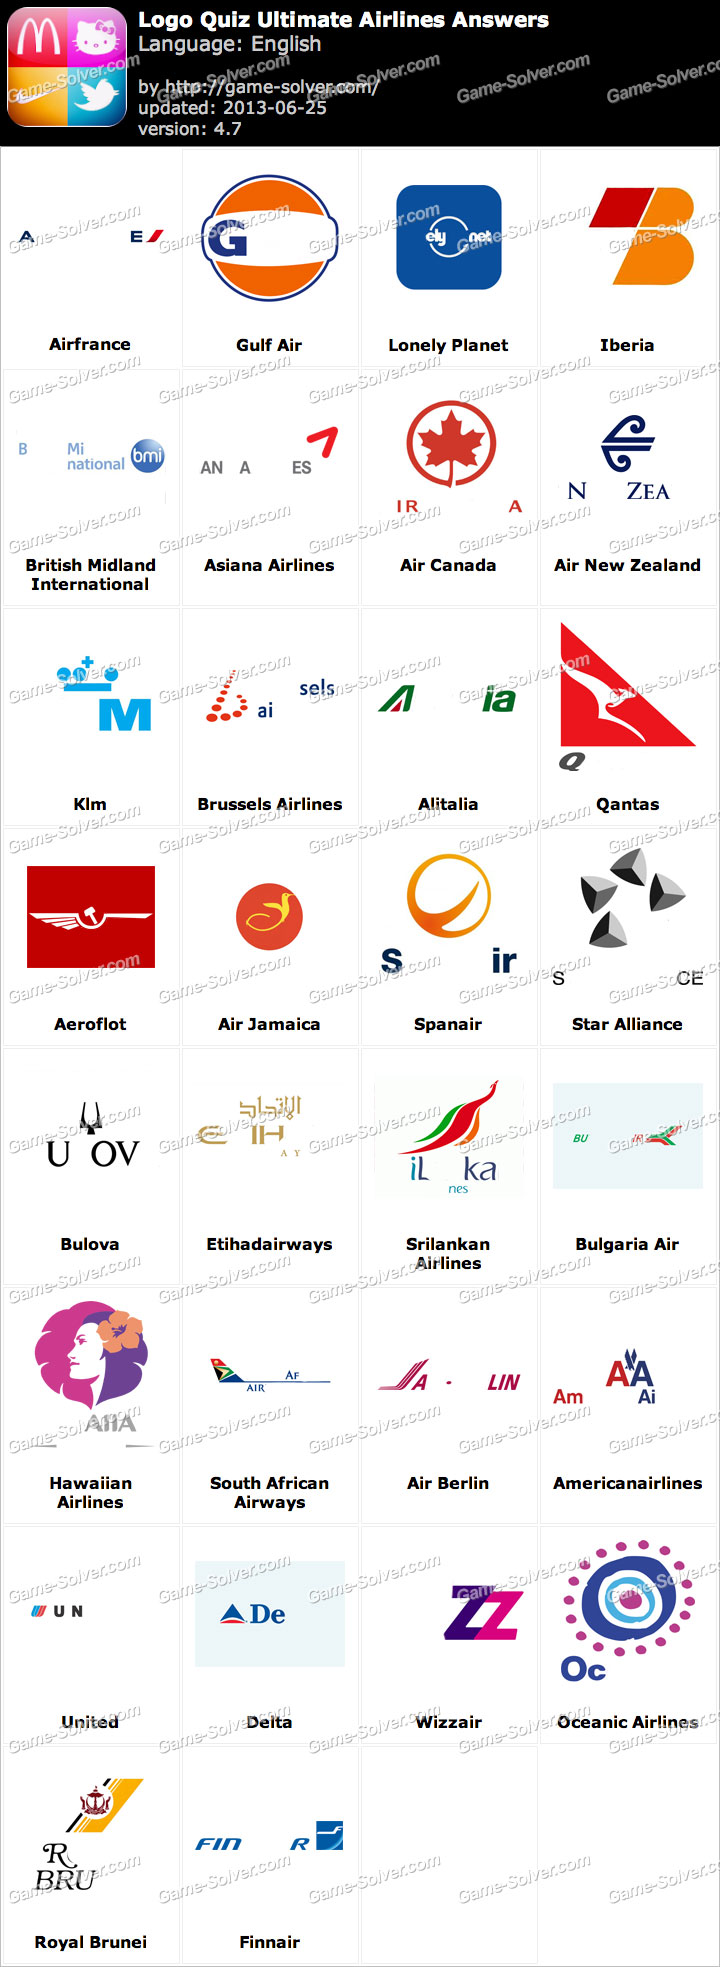 Airline Logos Starting With a Logo Quiz Ultimate Airlines